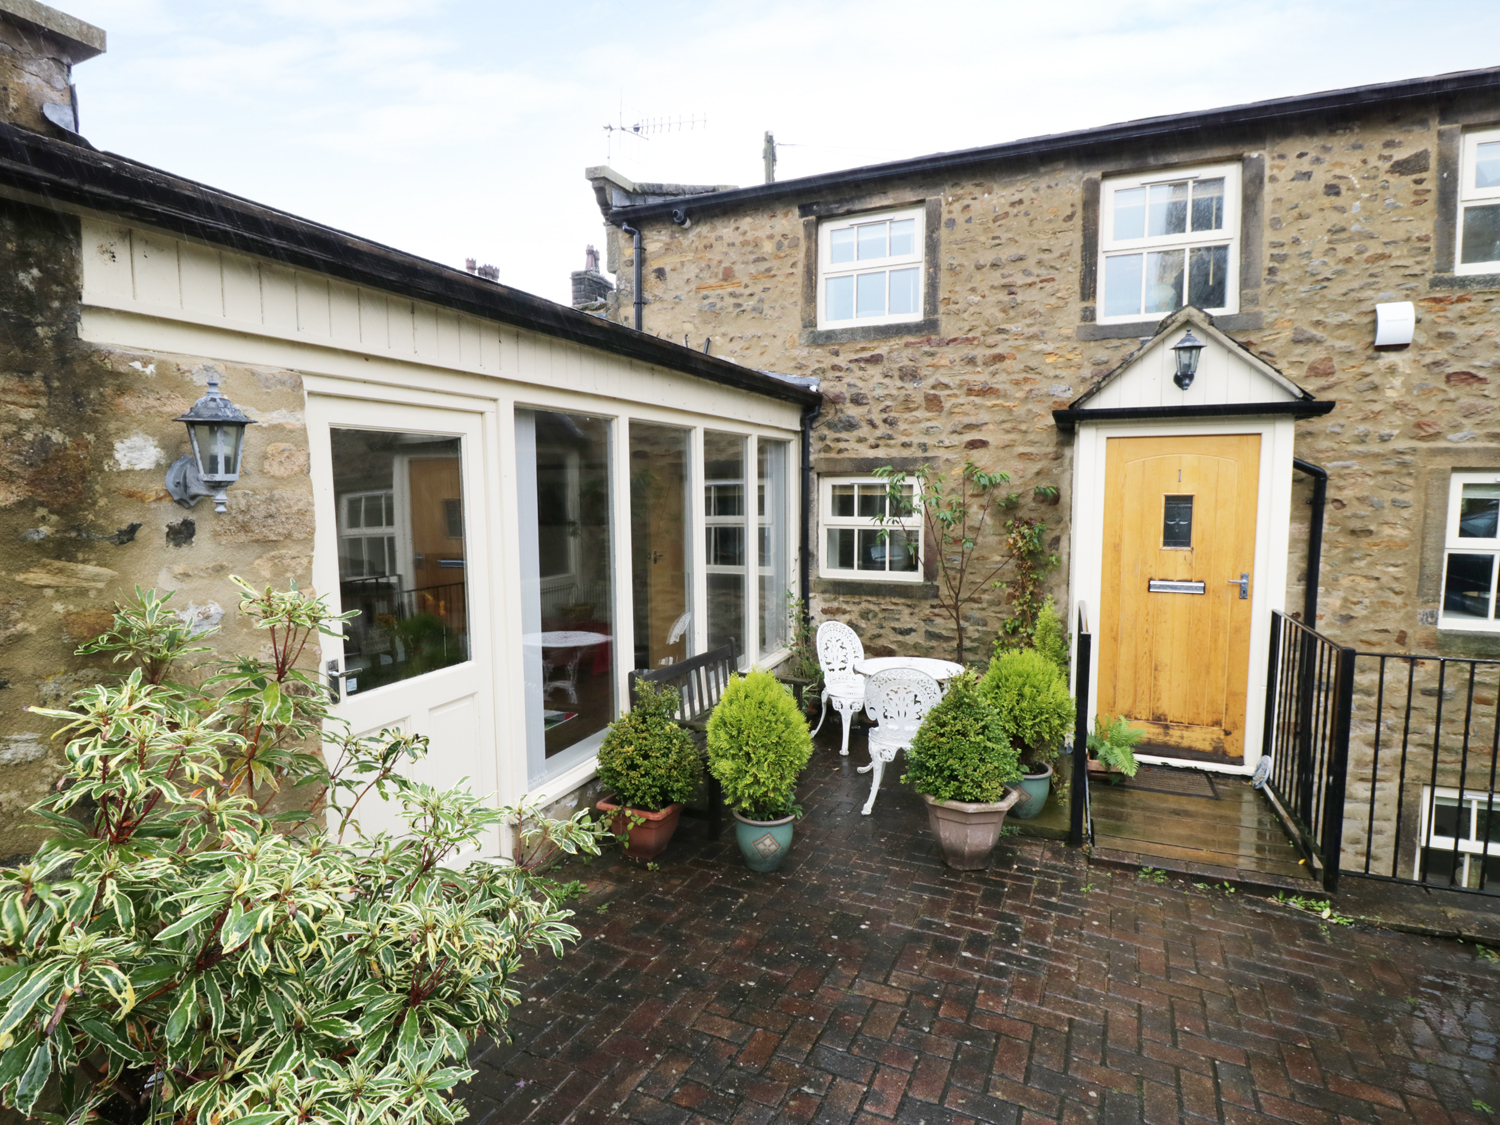 3 bedroom Cottage for rent in Ilkley